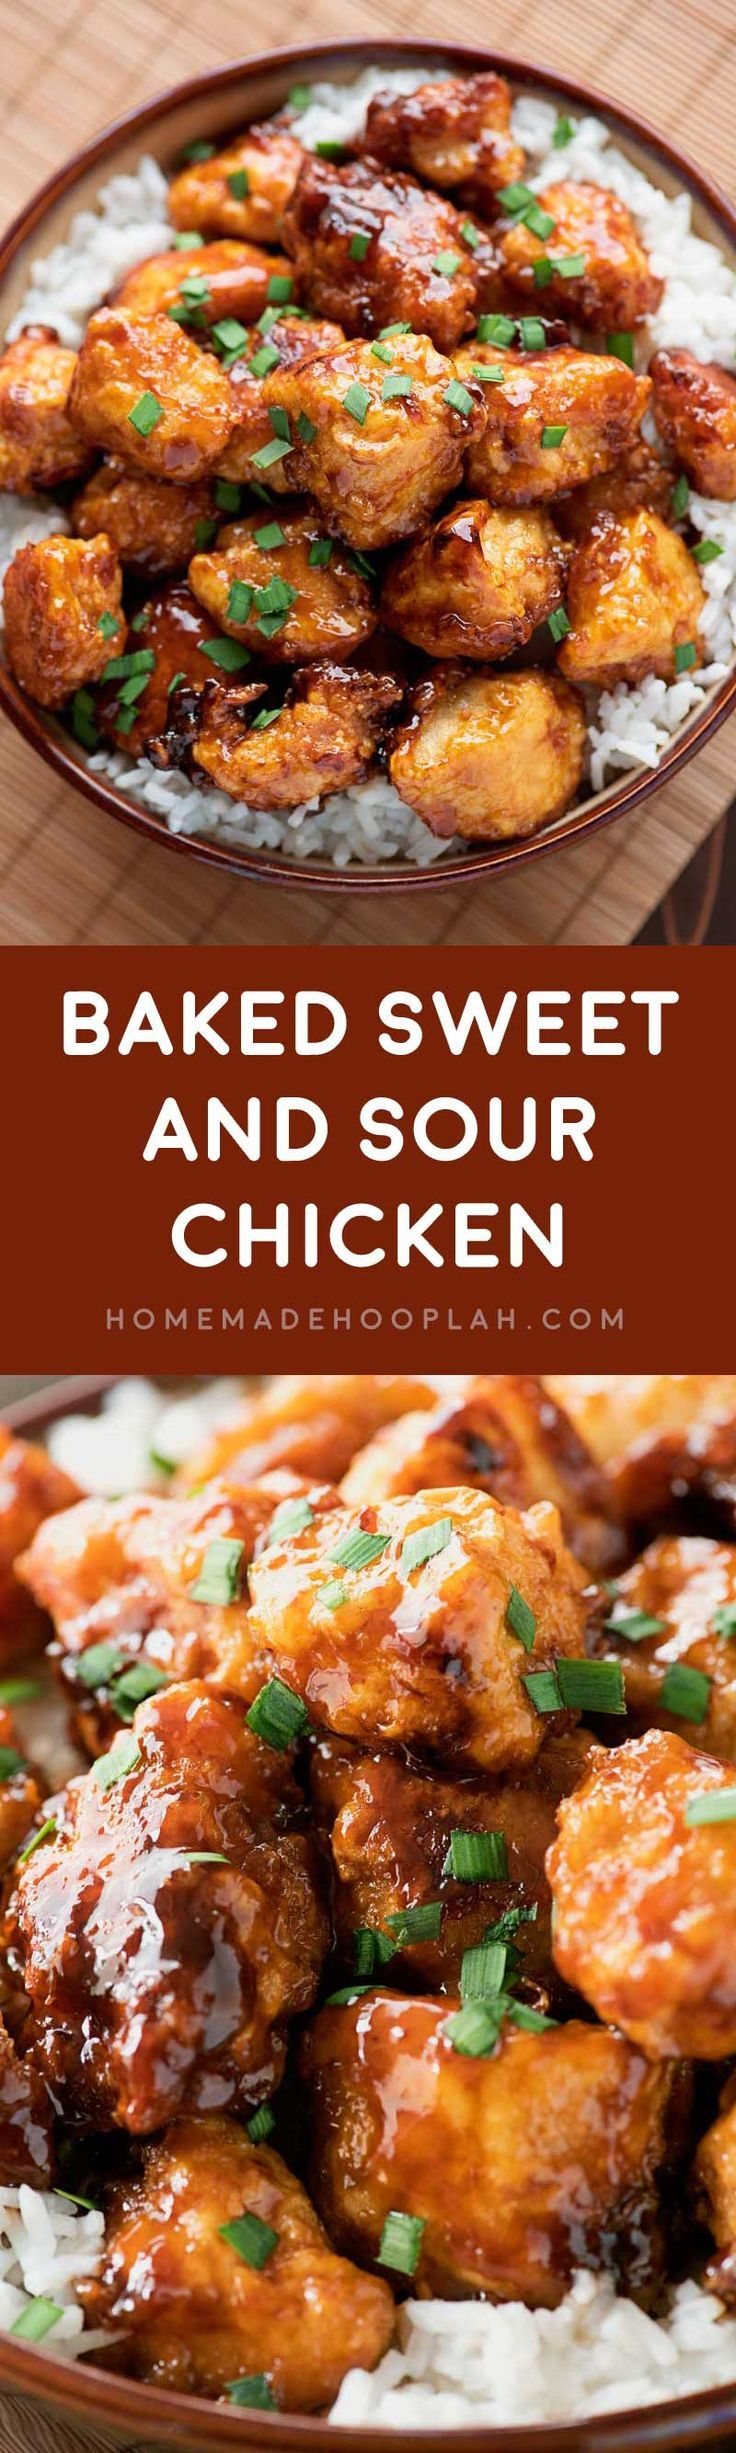 Baked Sweet and Sour Chicken! Skip the takeout and have a Chinese favorite at home: a delicious sweet and sour sauce poured over tender chicken with a crispy breading.